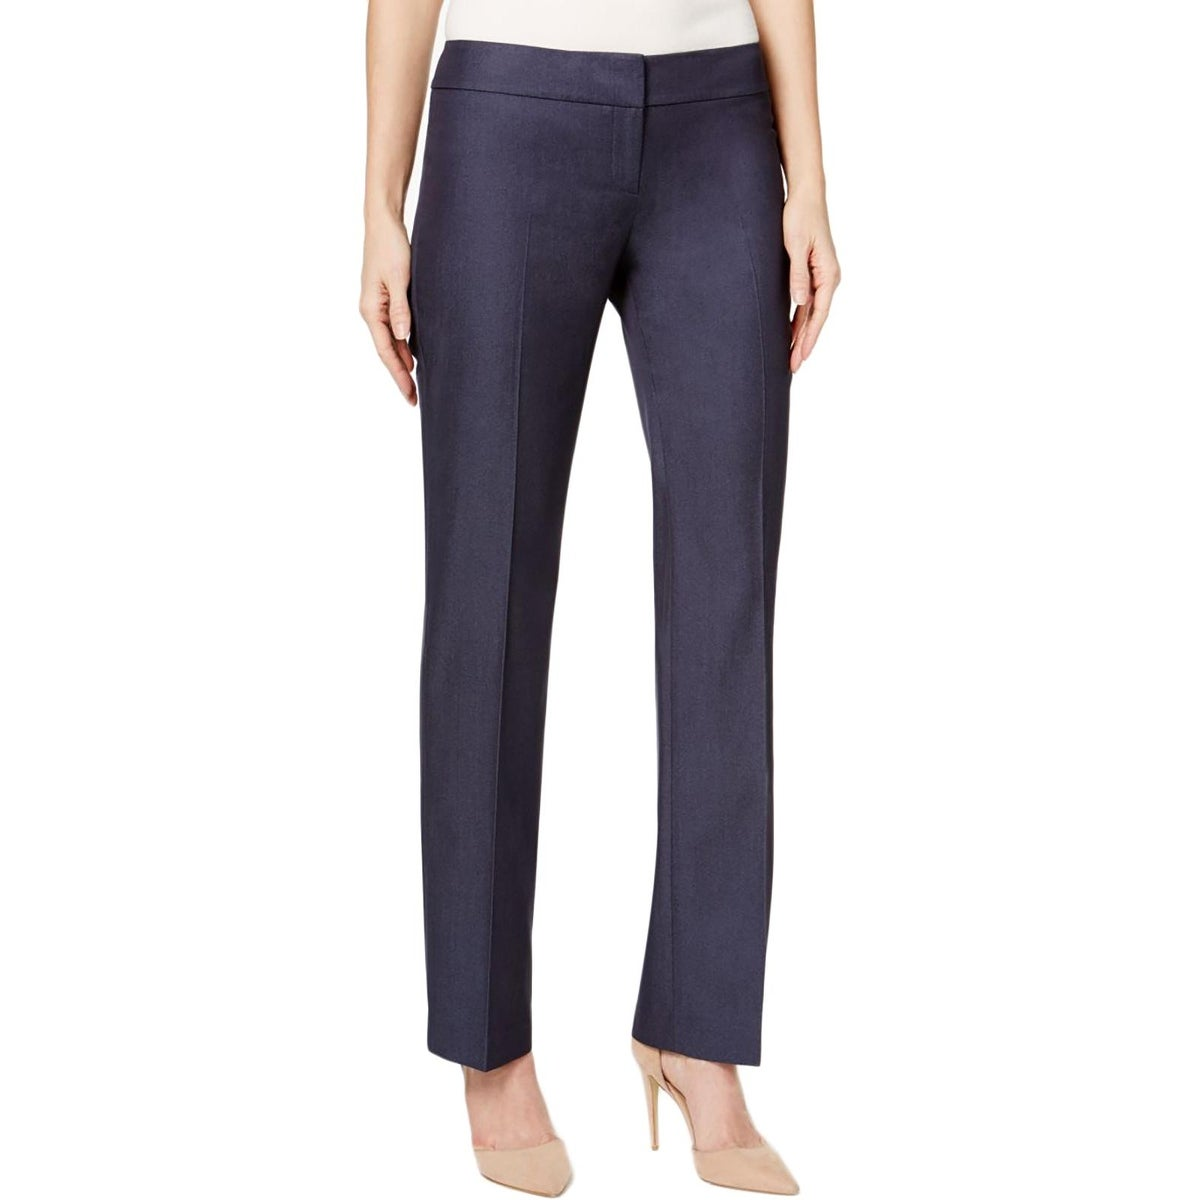 Shop Nine West Womens Dress Pants Woven Slim - Free Shipping On Orders Over   45 - Overstock.com - 22320911 10d5962c6f